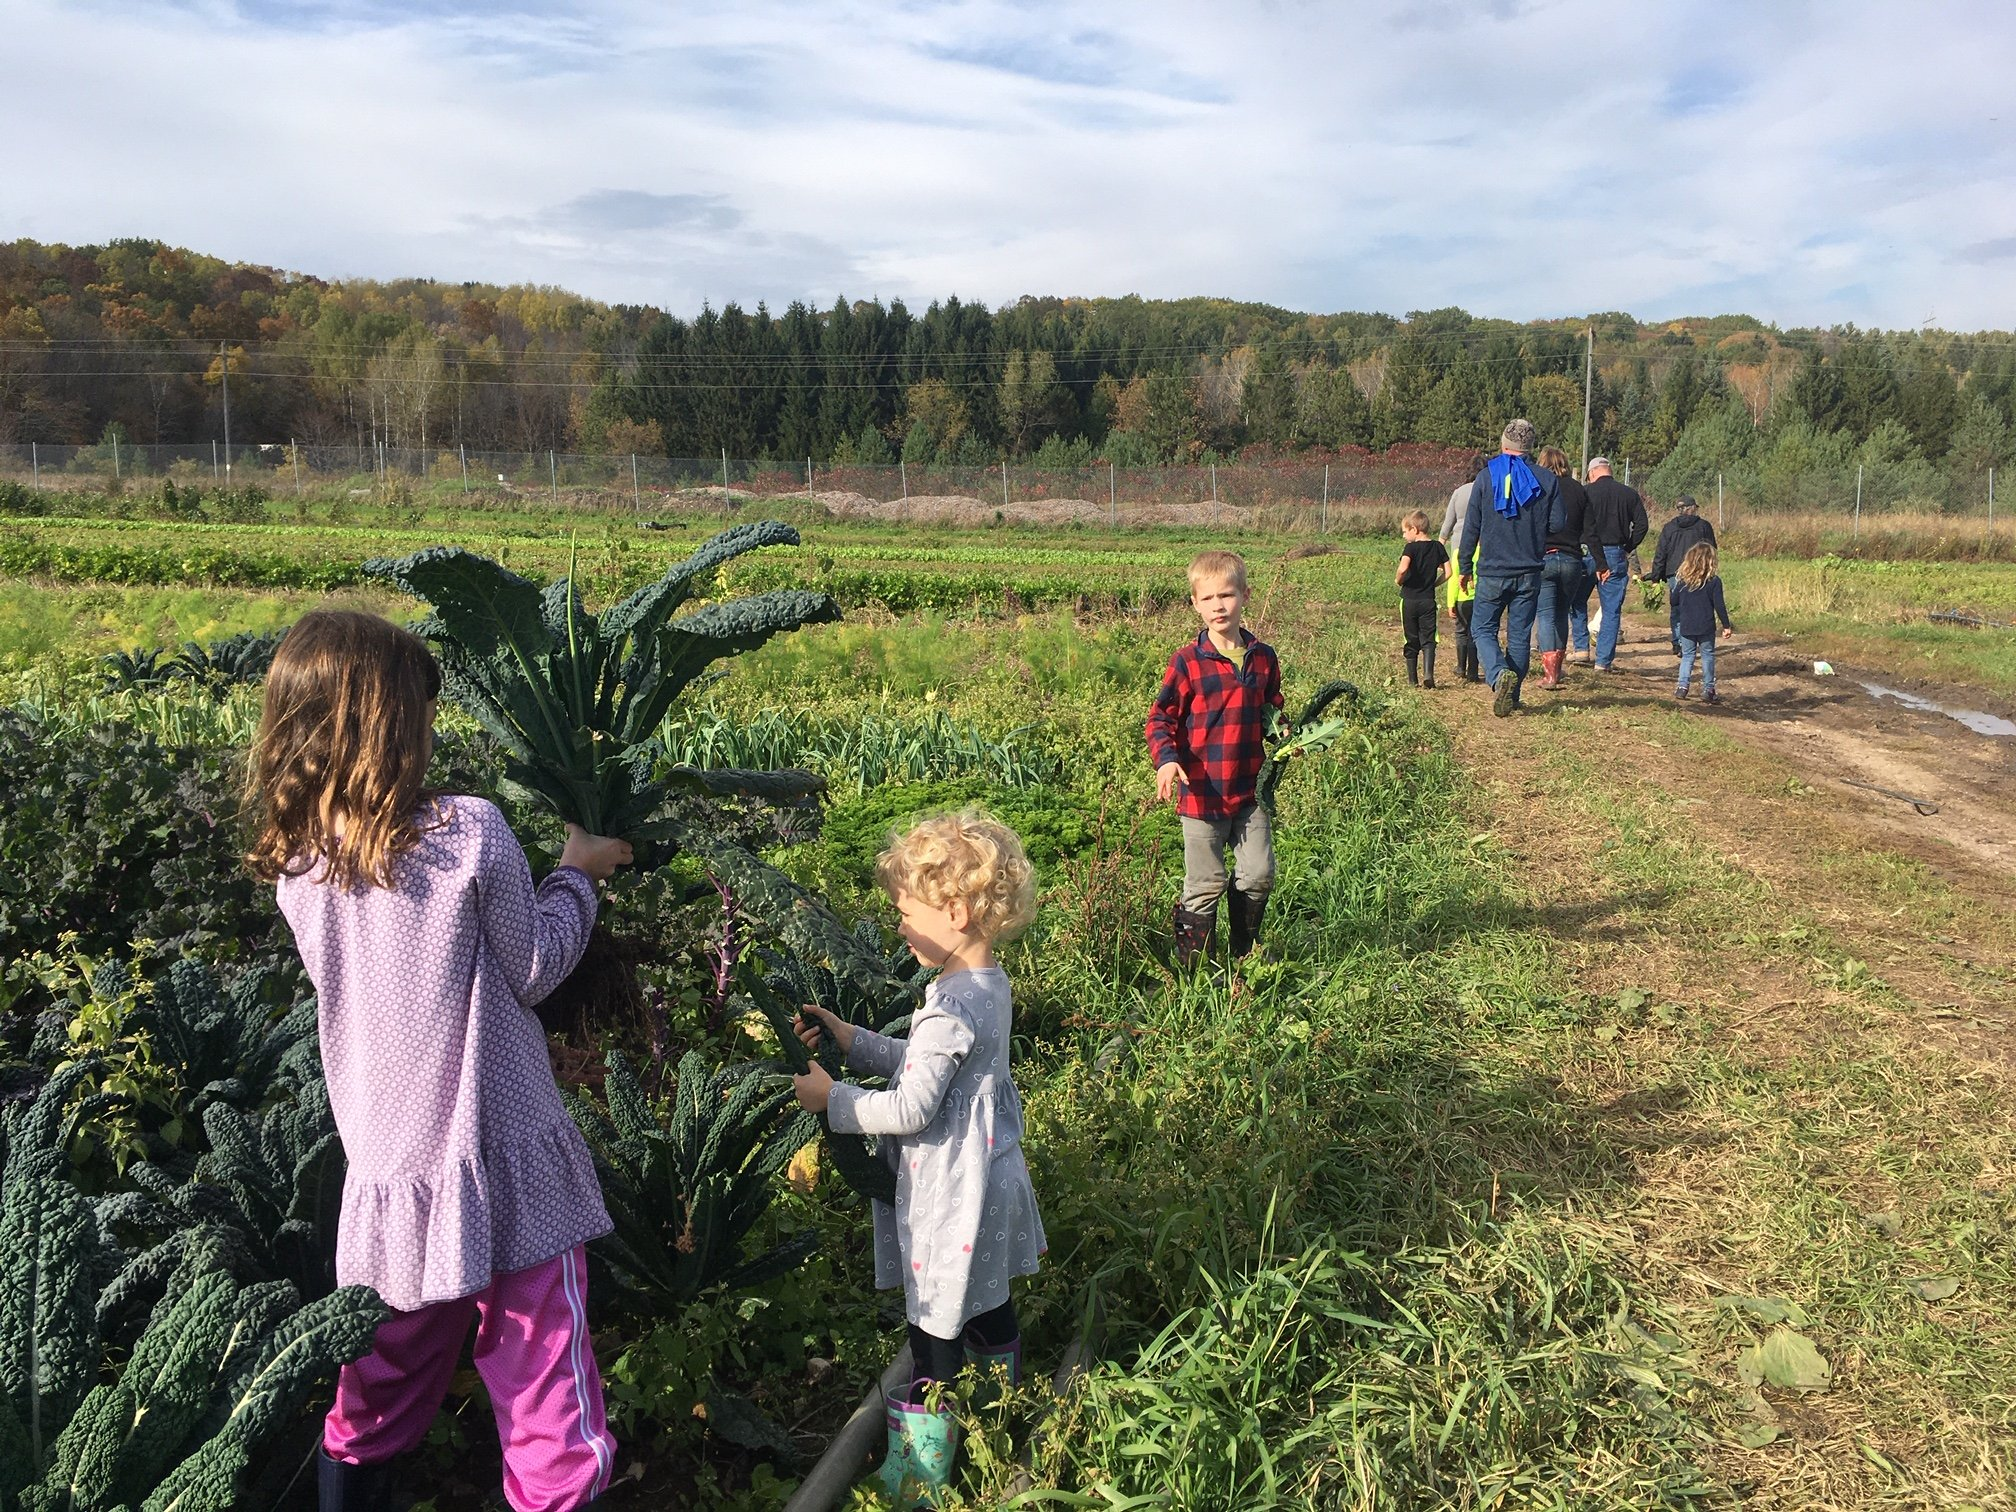 Previous Happening: Farm Happenings for October 23, 2019